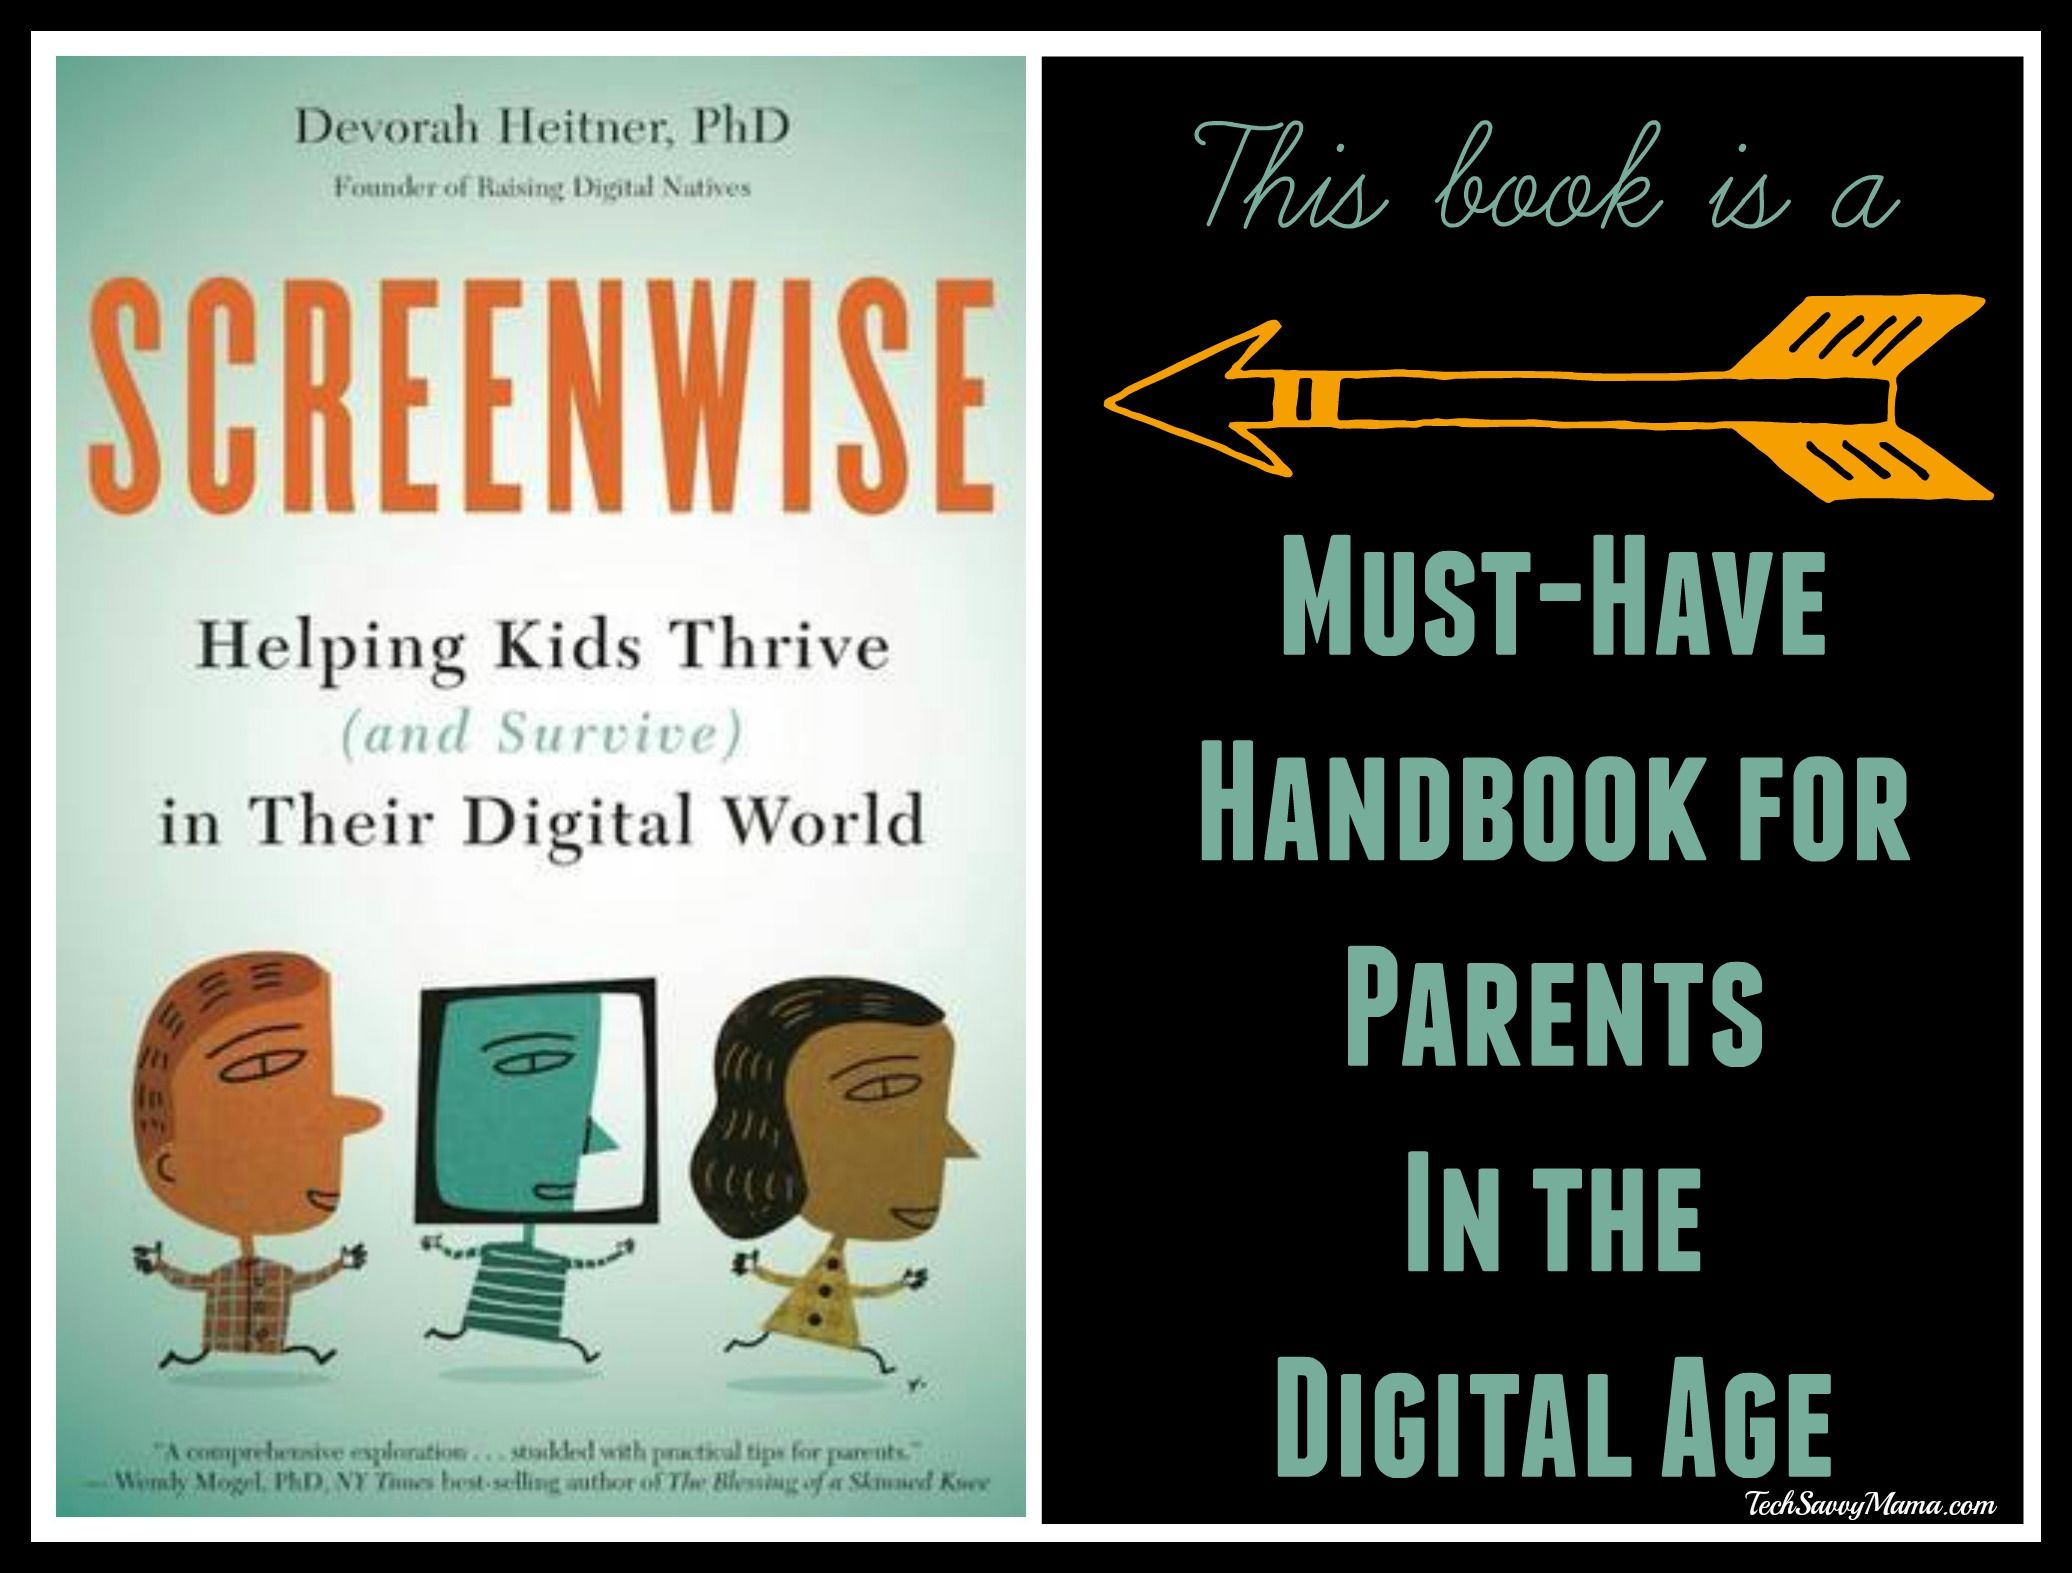 Screenwise A Must Have Handbook For Parents In The Digital Age Book Review W Author Q A Tech Savvy Mama Digital Parenting Screen Time For Kids Books